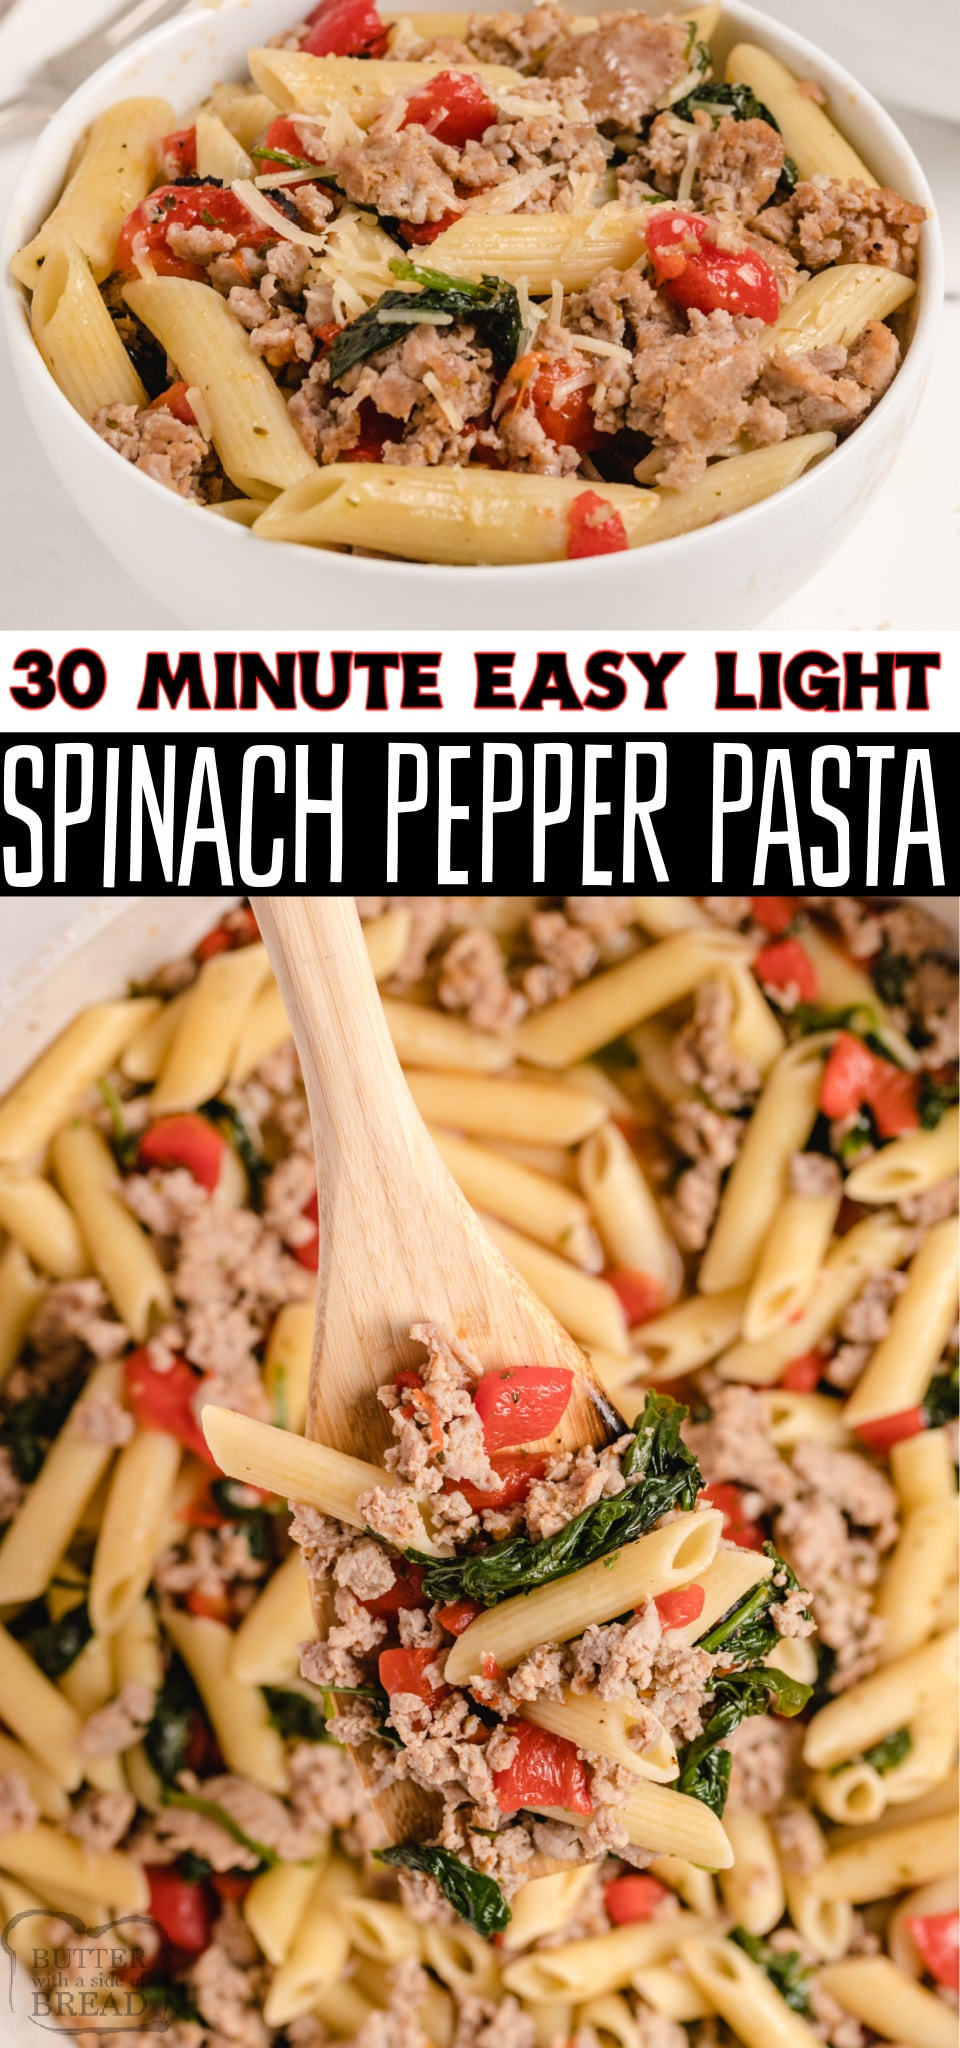 Light Spinach, Sausage & Pepper Pasta made easy in 30 minutes & so flavorful! Simple pasta recipe with turkey Italian sausage perfect for weeknight dinners.